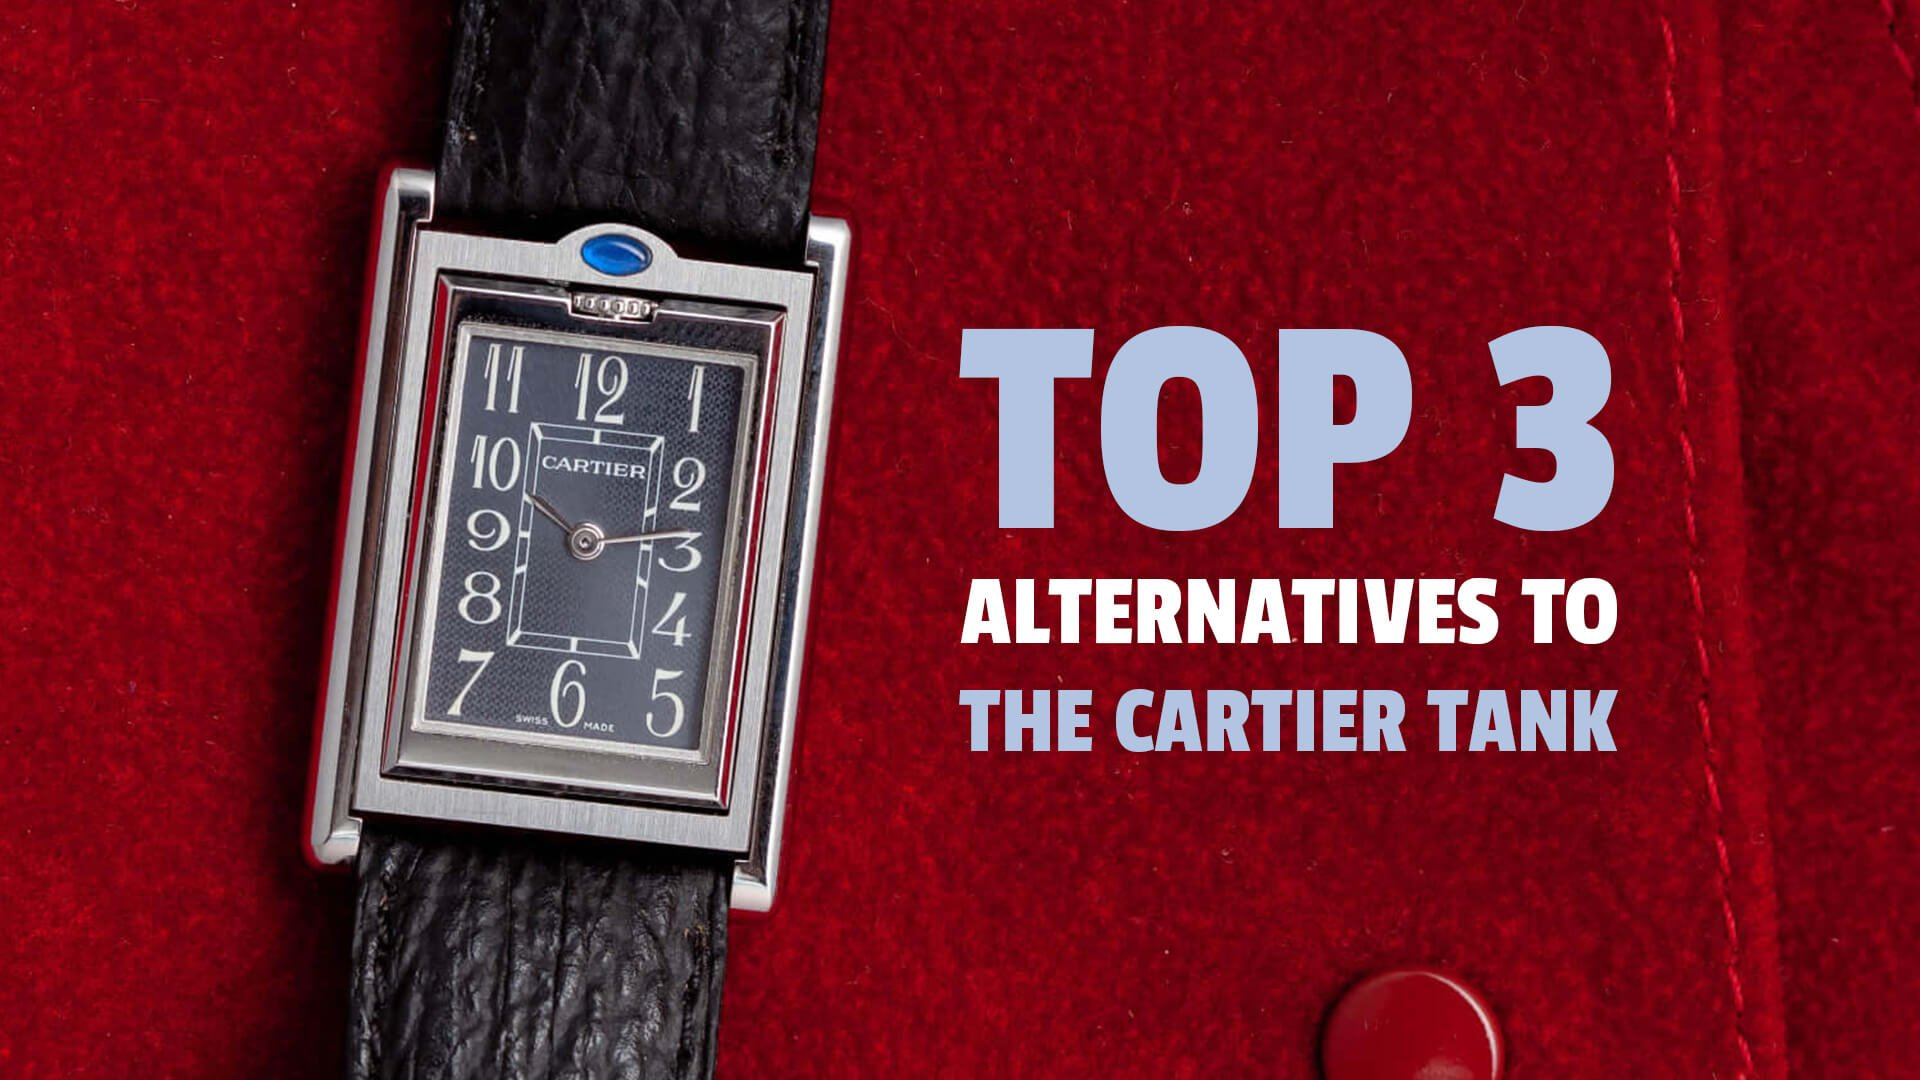 Watch 101: Top 3 Alternatives To The Cartier Tank